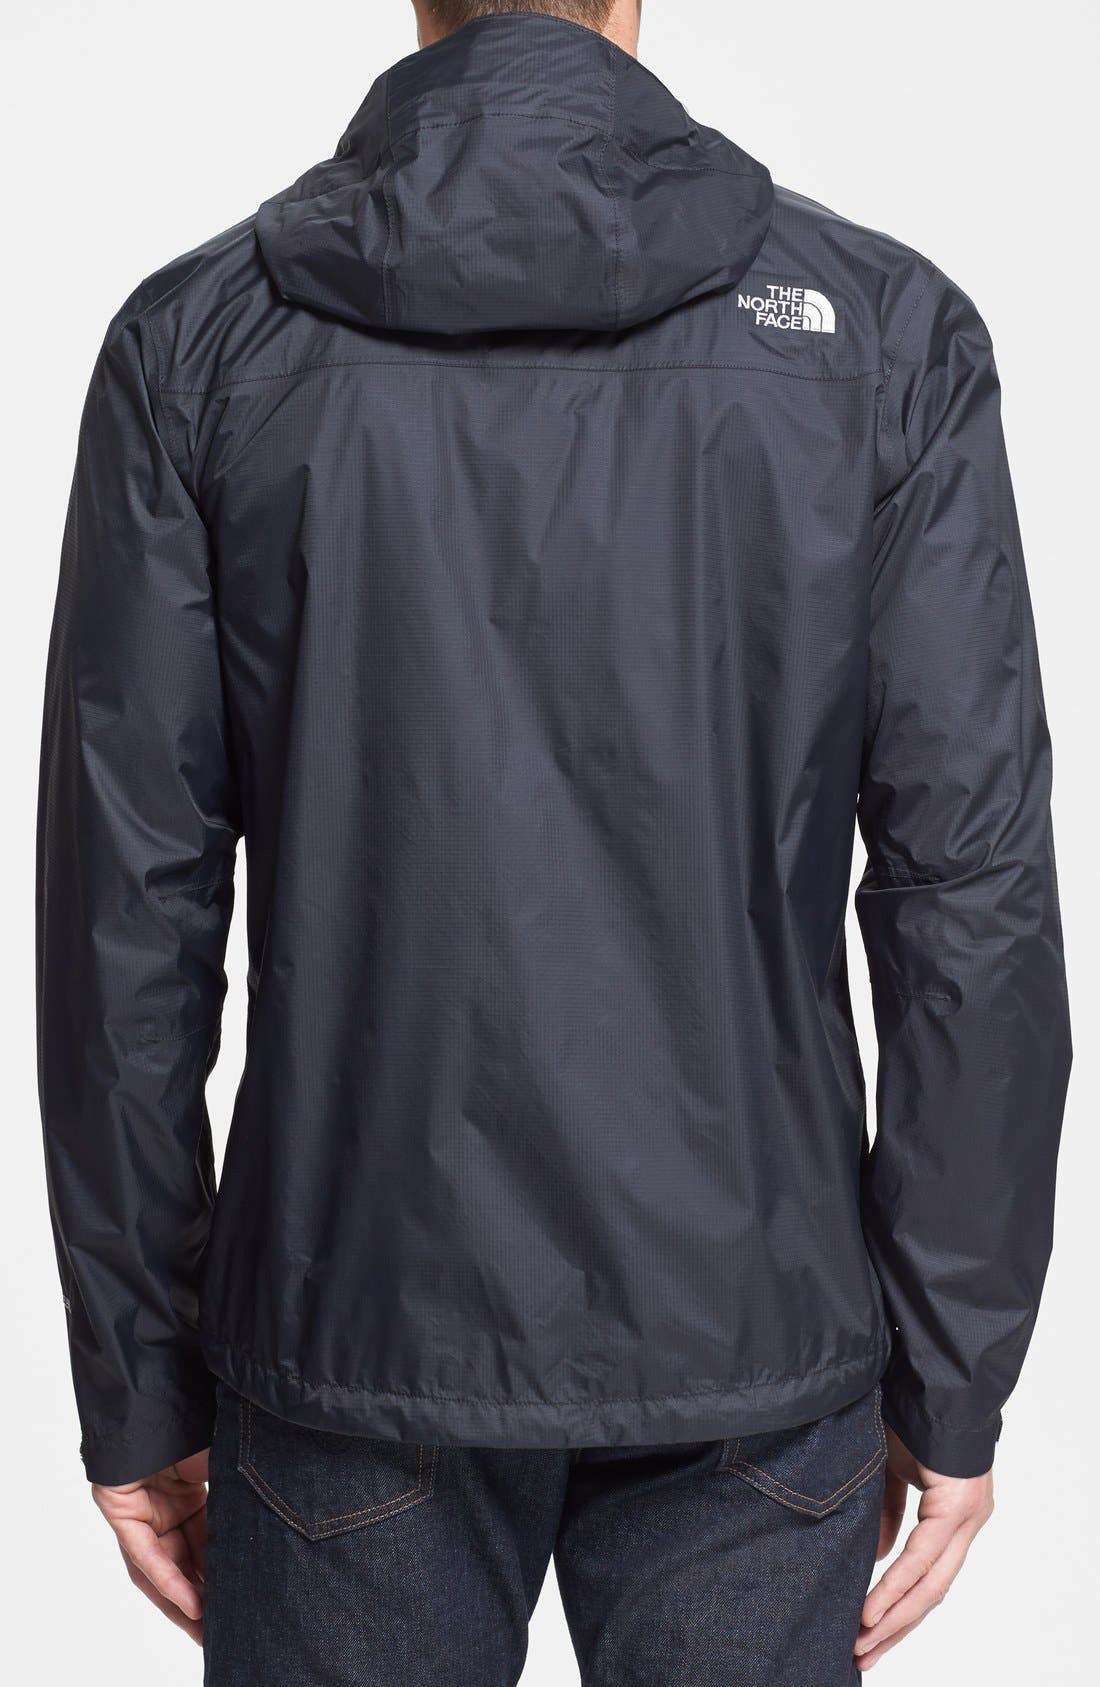 THE NORTH FACE,                             Venture Waterproof Jacket,                             Alternate thumbnail 2, color,                             001